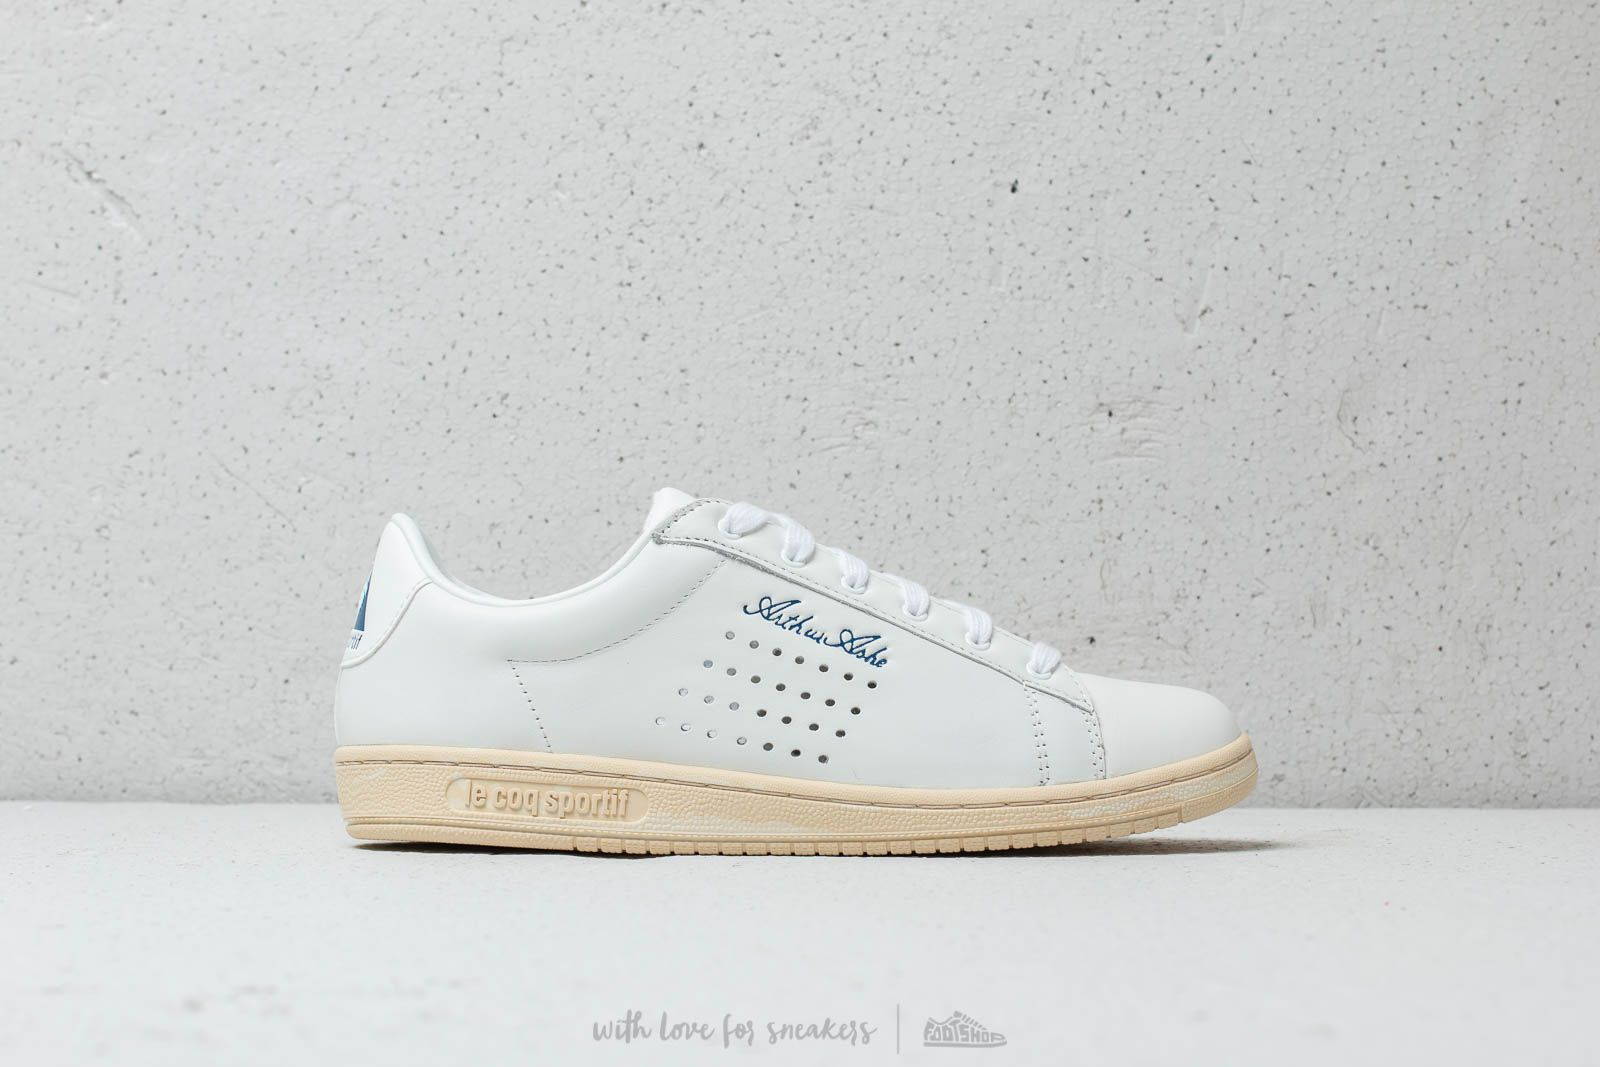 f65fd44493a0 Le Coq Sportif Arthur Ashe OG Optical White at a great price 92 € buy at